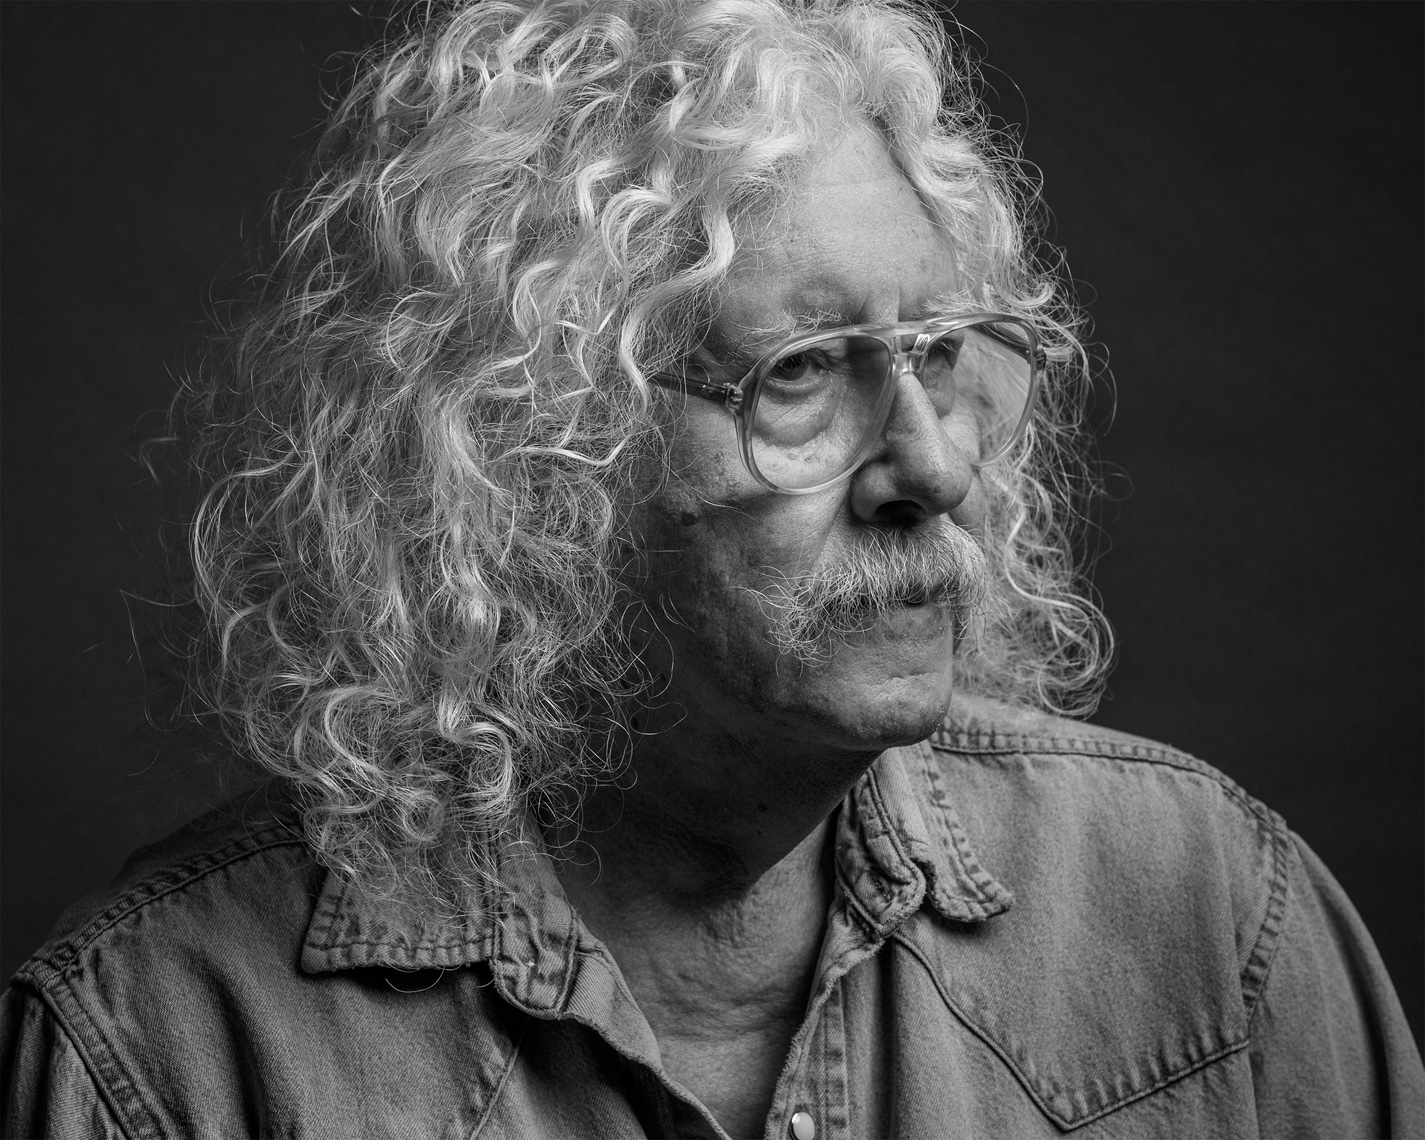 ARLO GUTHRIE • THE WALL STREET JOURNAL • JASON GROW PHOTOGRAPHY